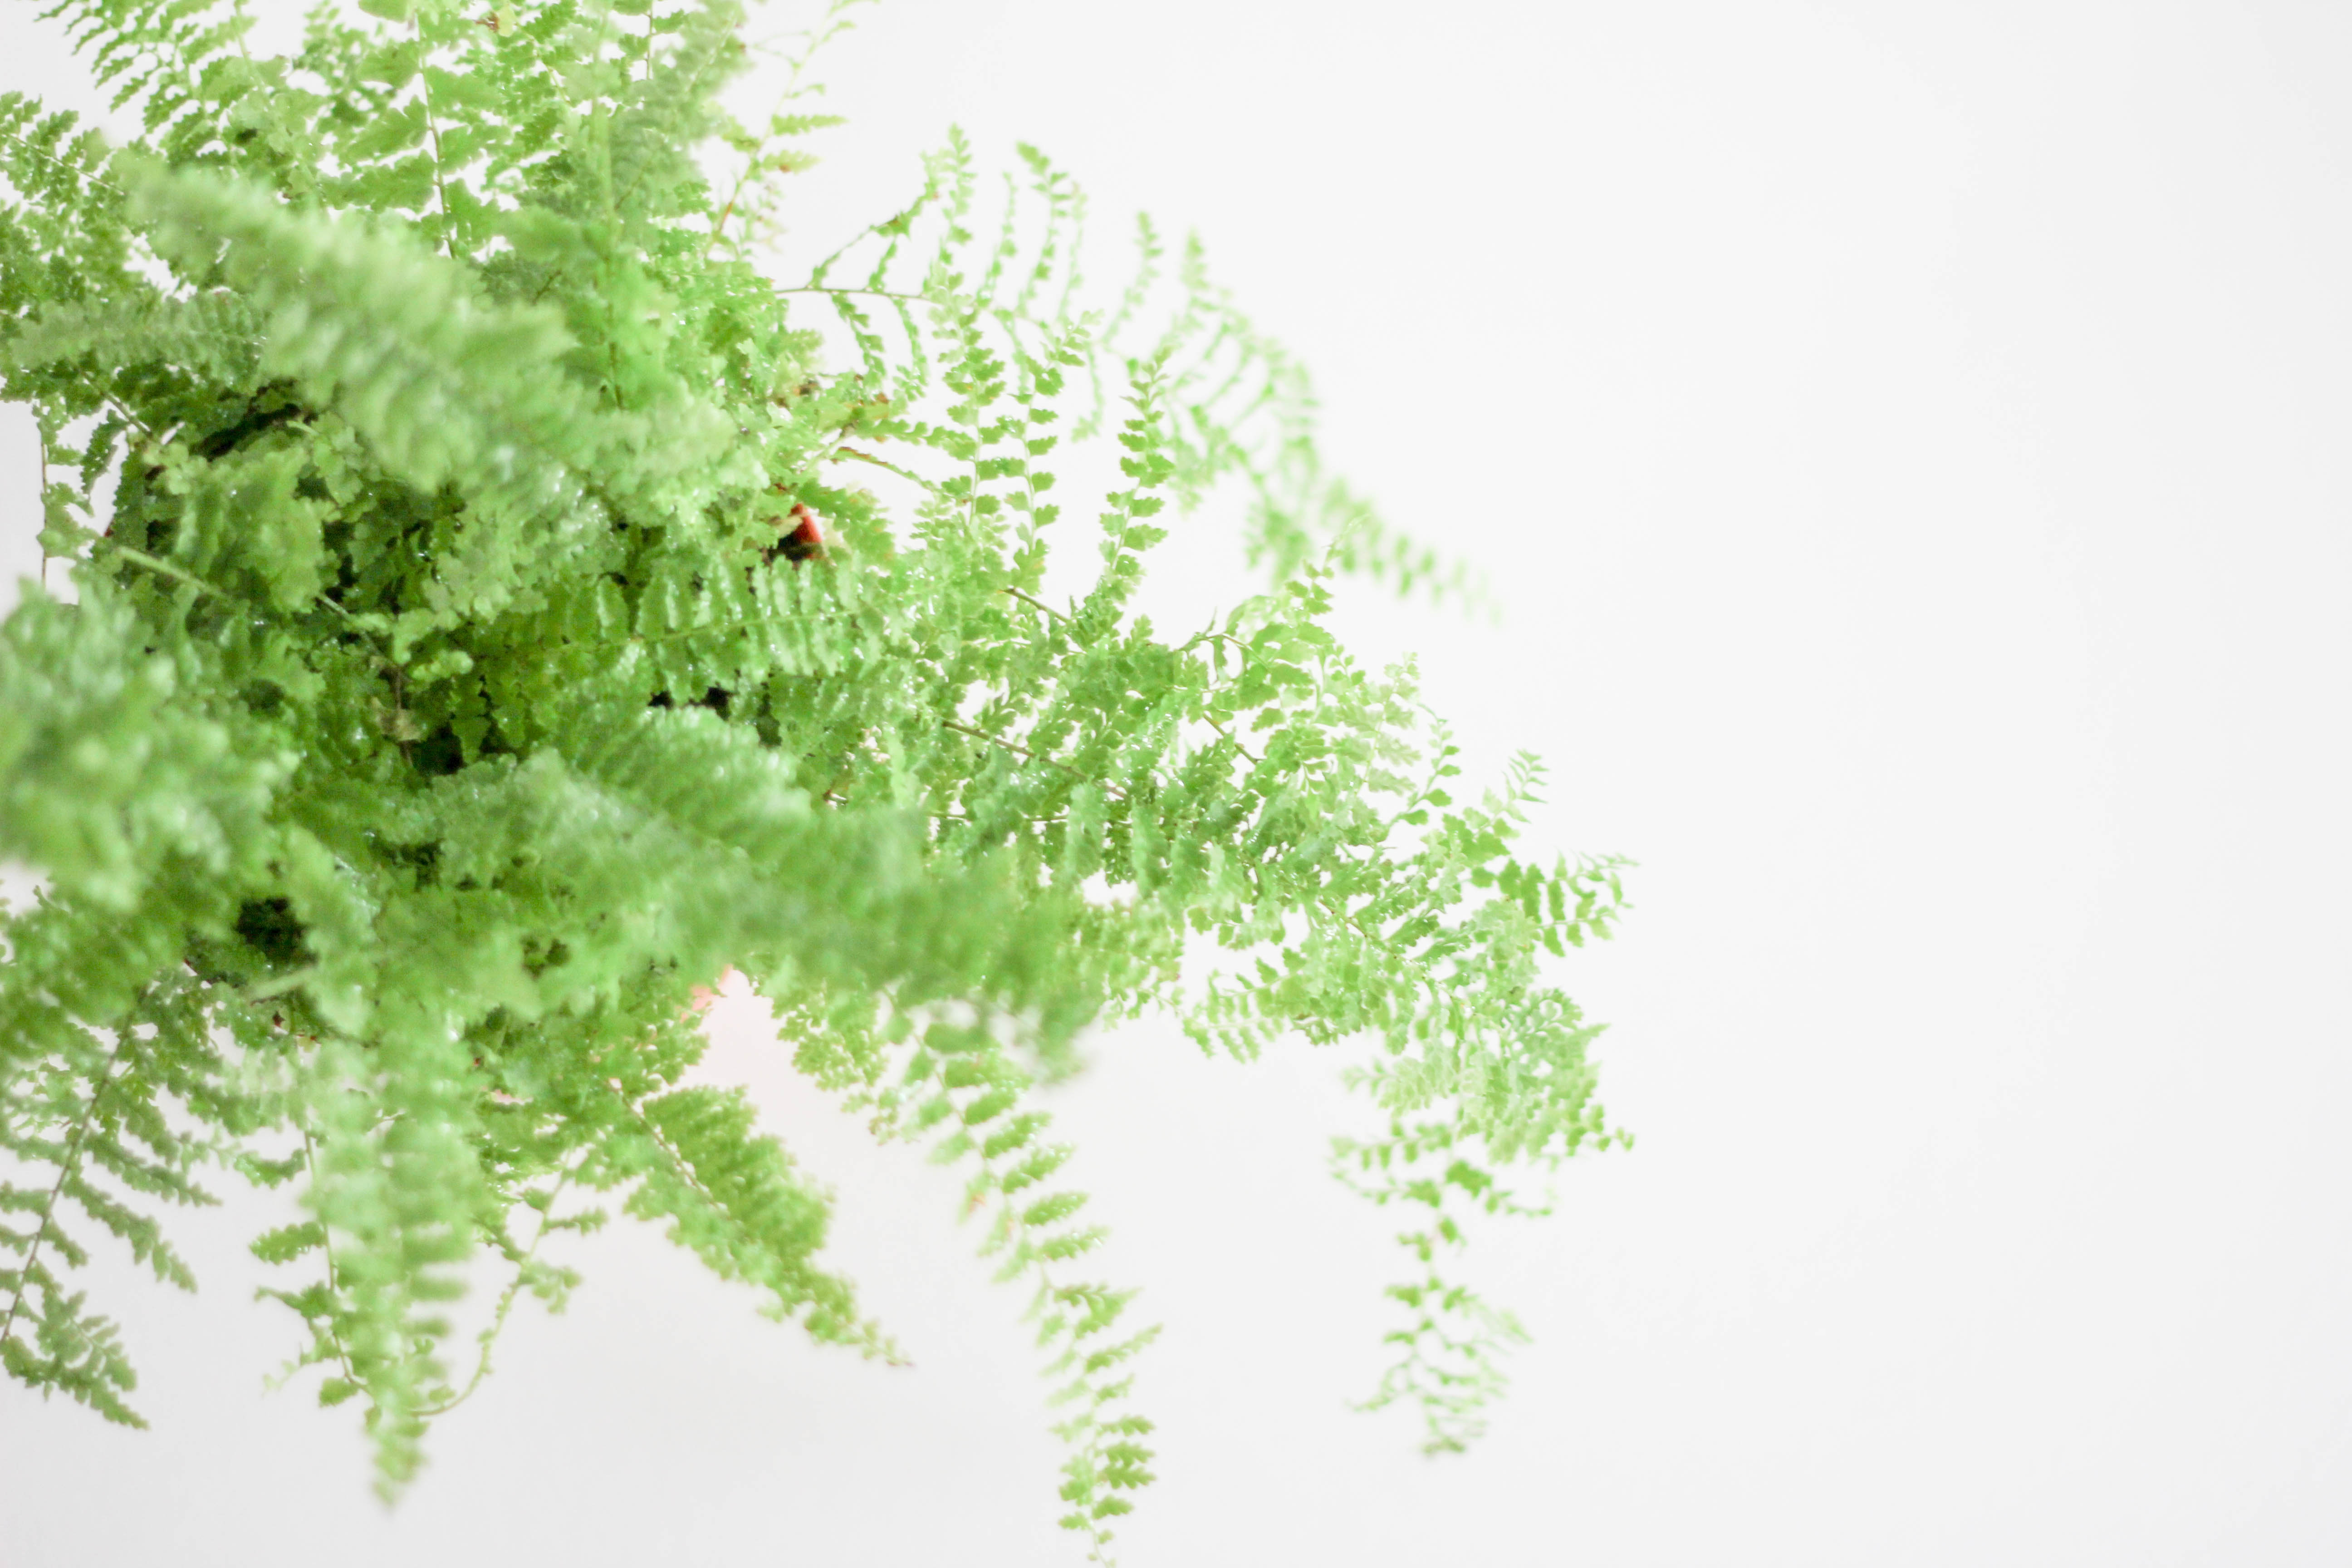 Canva - Green Boston Fern Plant